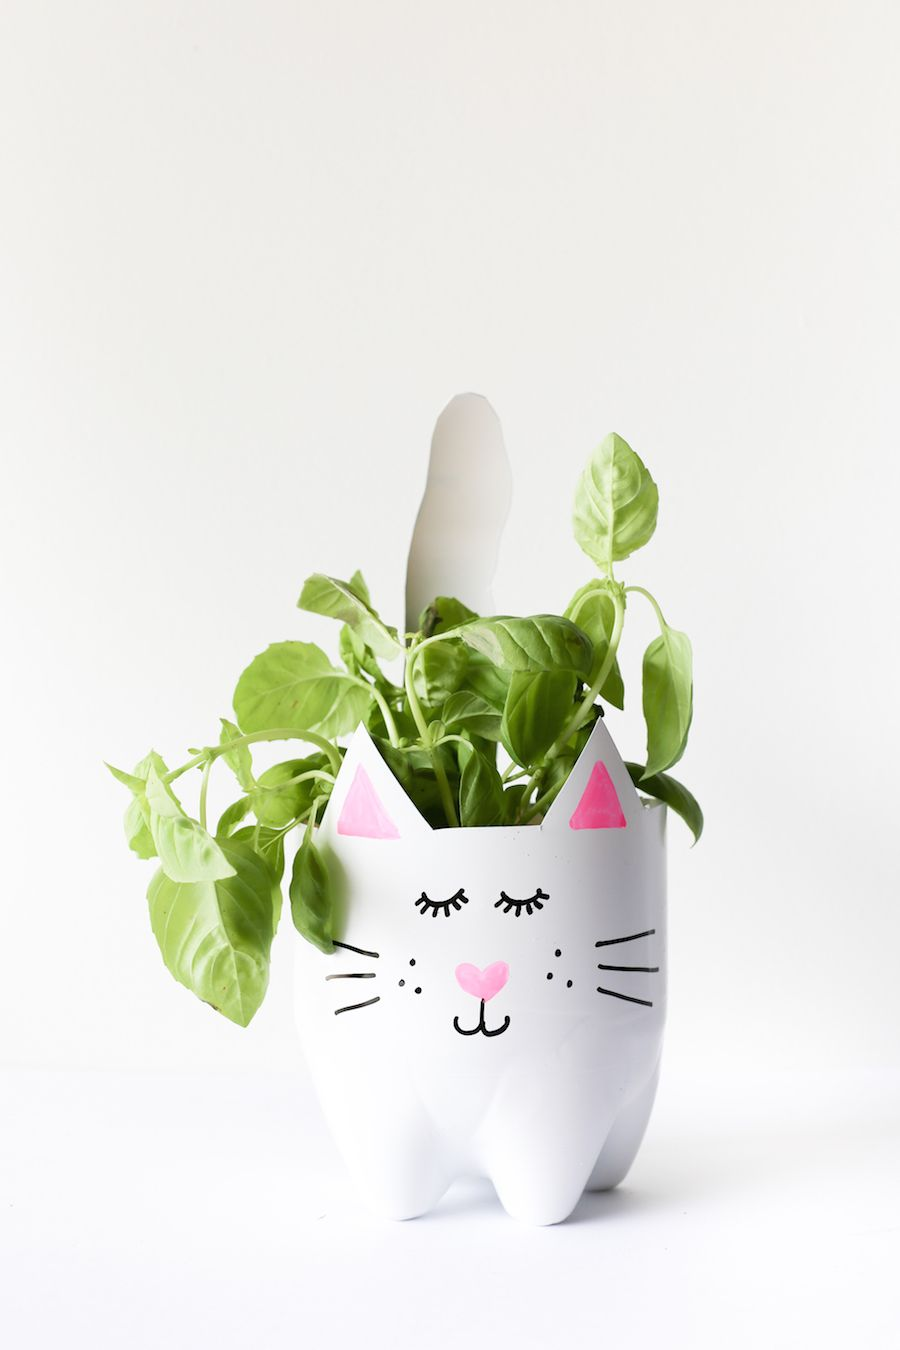 Turn an empty soda bottle into an adorable kitty plant planter for catnip, herbs, or even a cactus or succulent! Easy to make and so cute! // Salty Canary // #ad